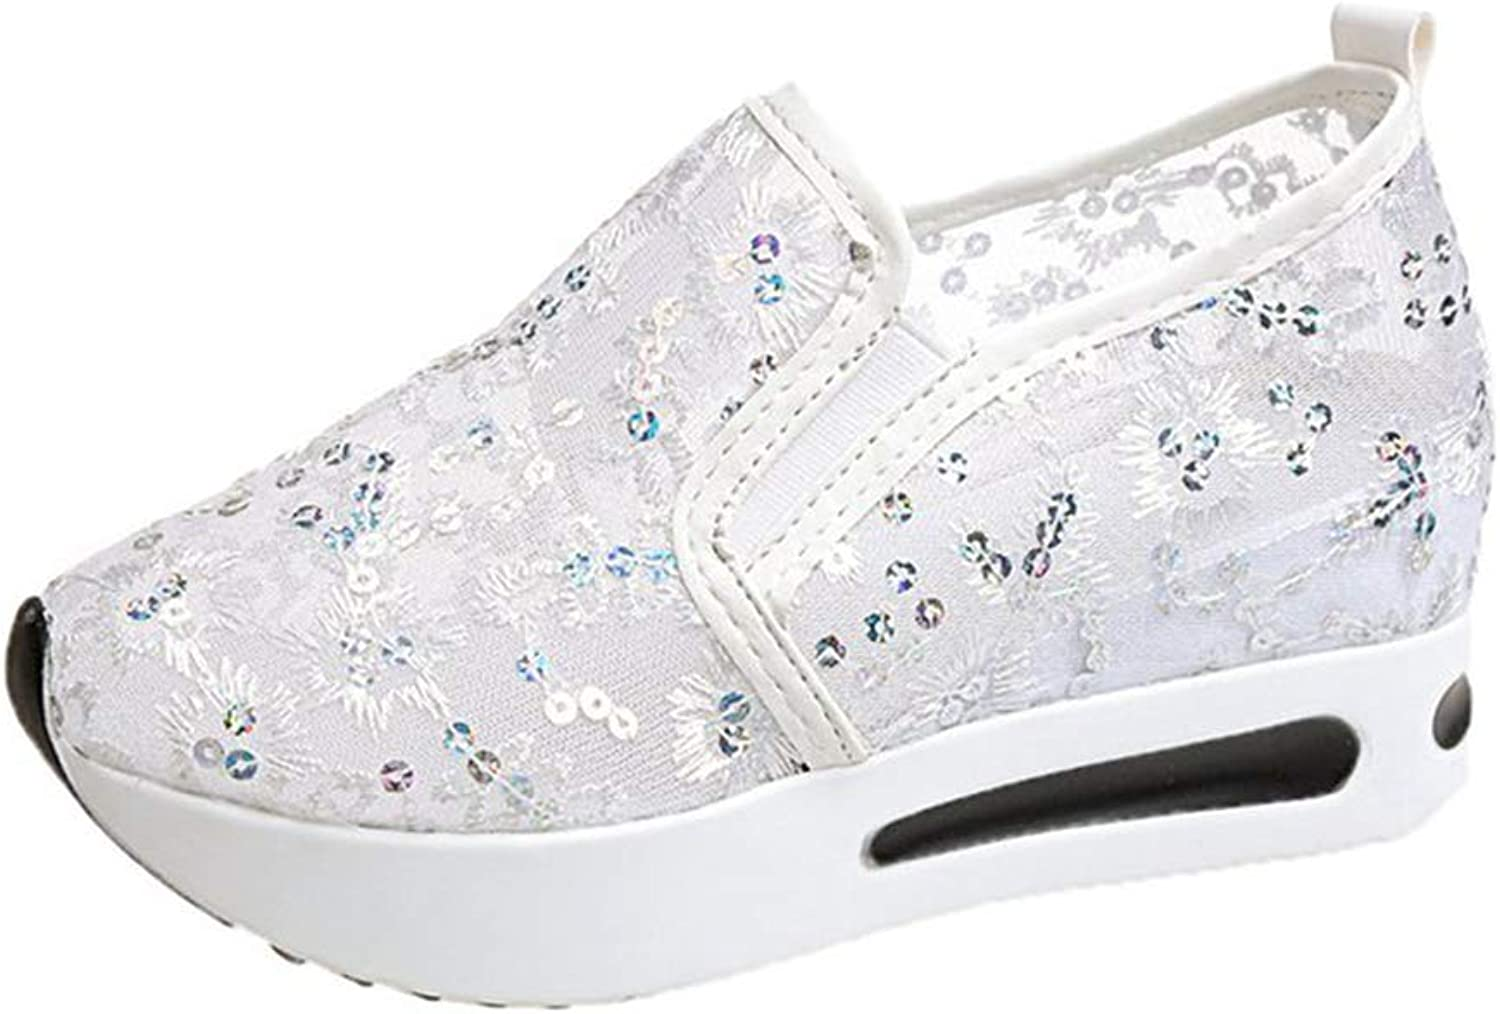 GilesJones Flats Loafers Women,Summer Hollow Lace Floral Round Toe Slip-On Platform shoes